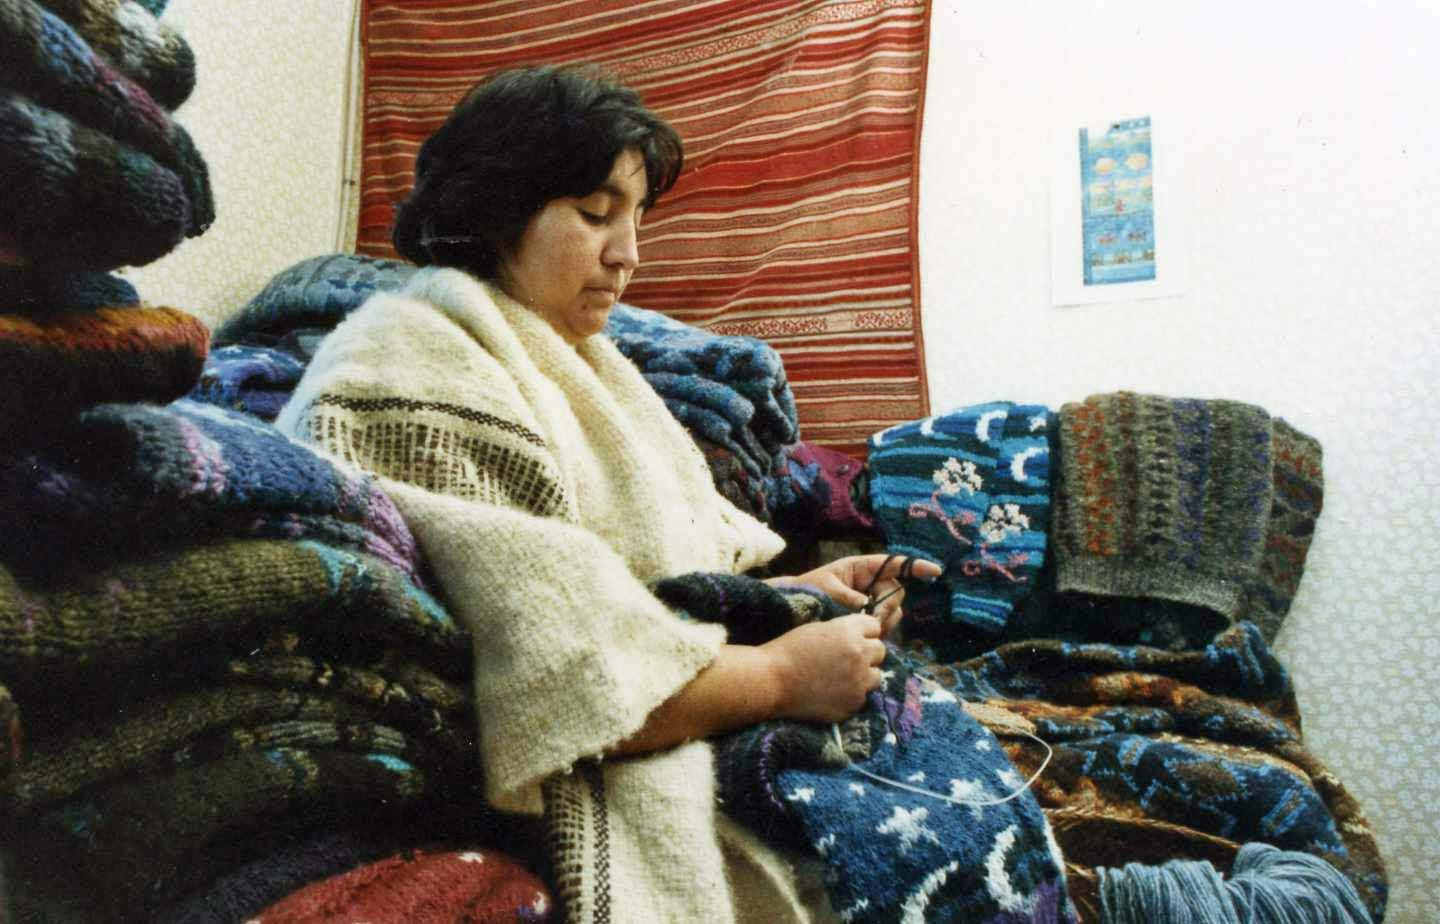 knitter in Chile